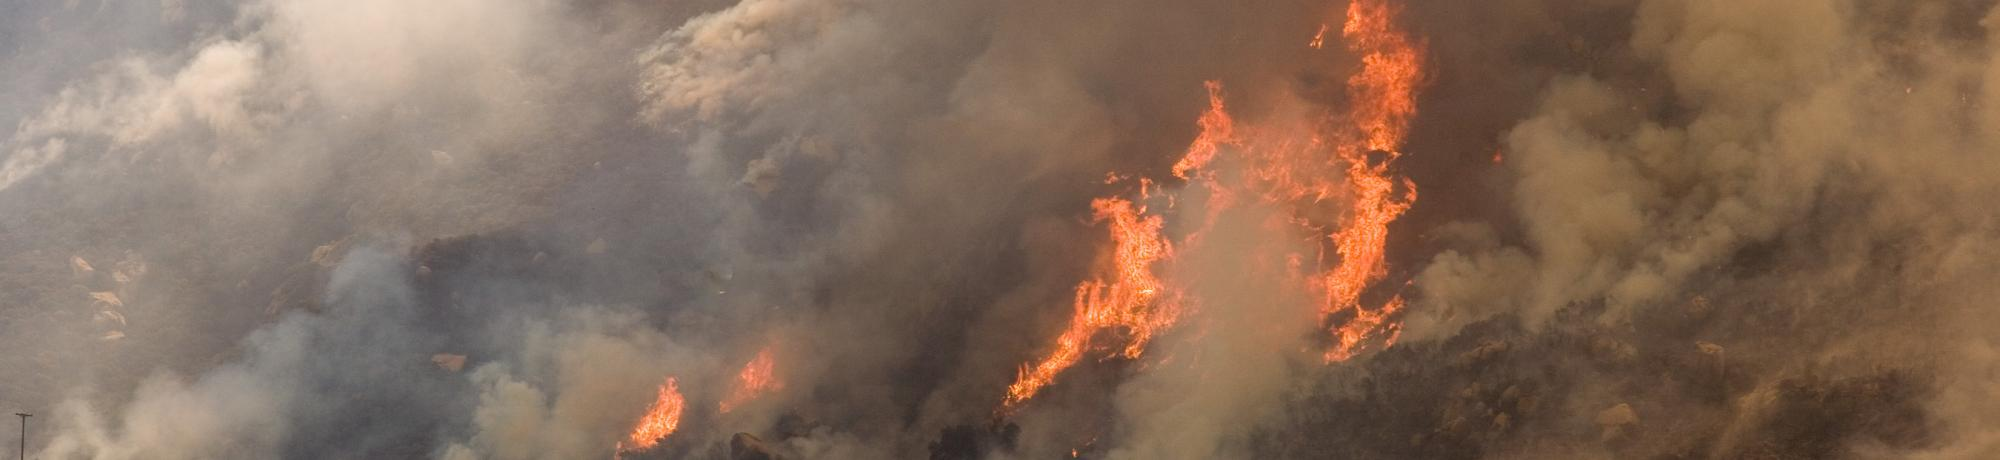 FEMA helicopter drops water on California wildfire